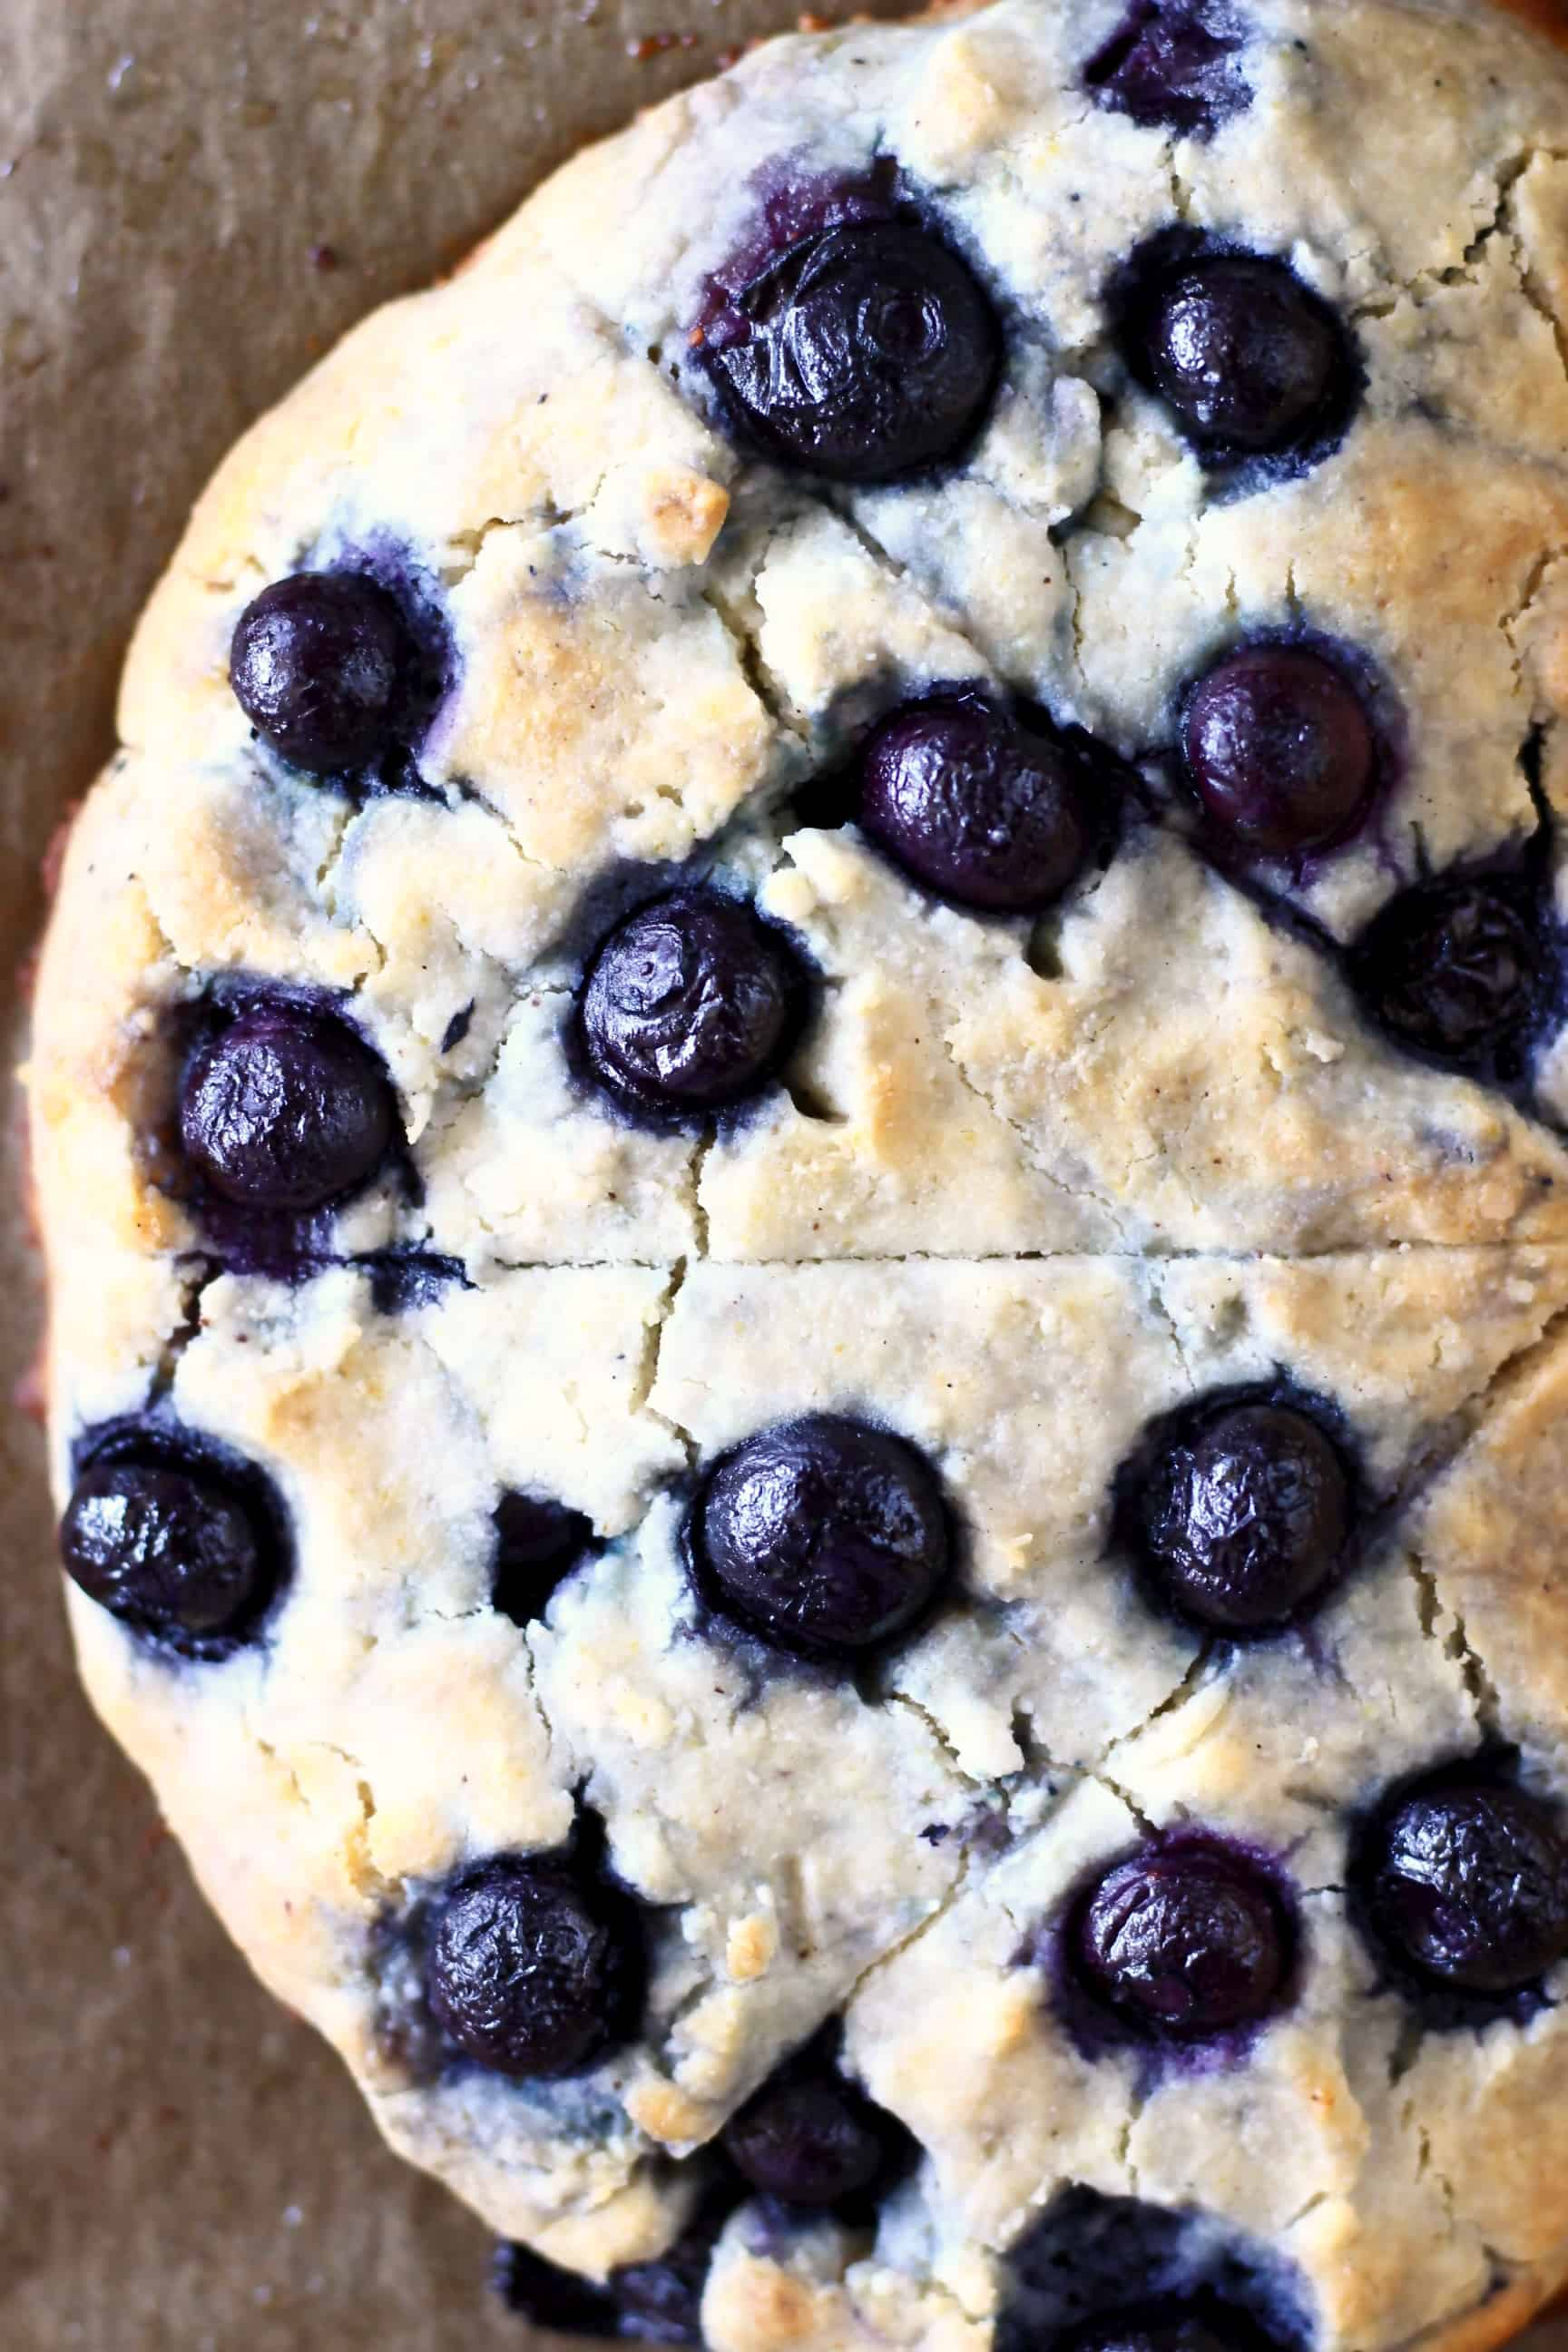 Four triangular gluten-free blueberry scones bunched together on a sheet of brown baking paper